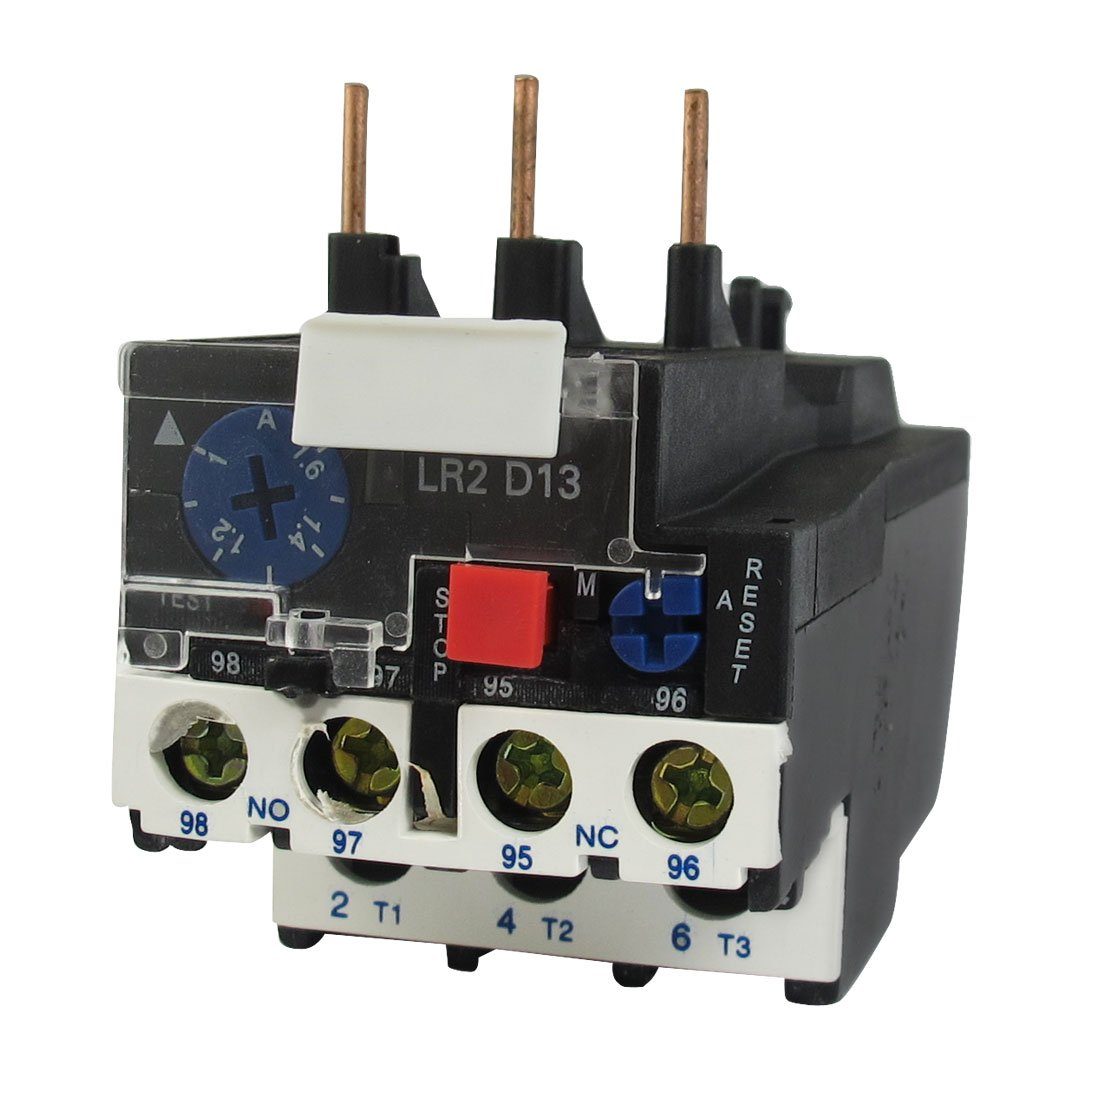 LR2-13 1.6A 1-1.6A 3-Phase 1NO 1NC Electric Thermal Overload Relay ножницы по металлу gross piranha 78333